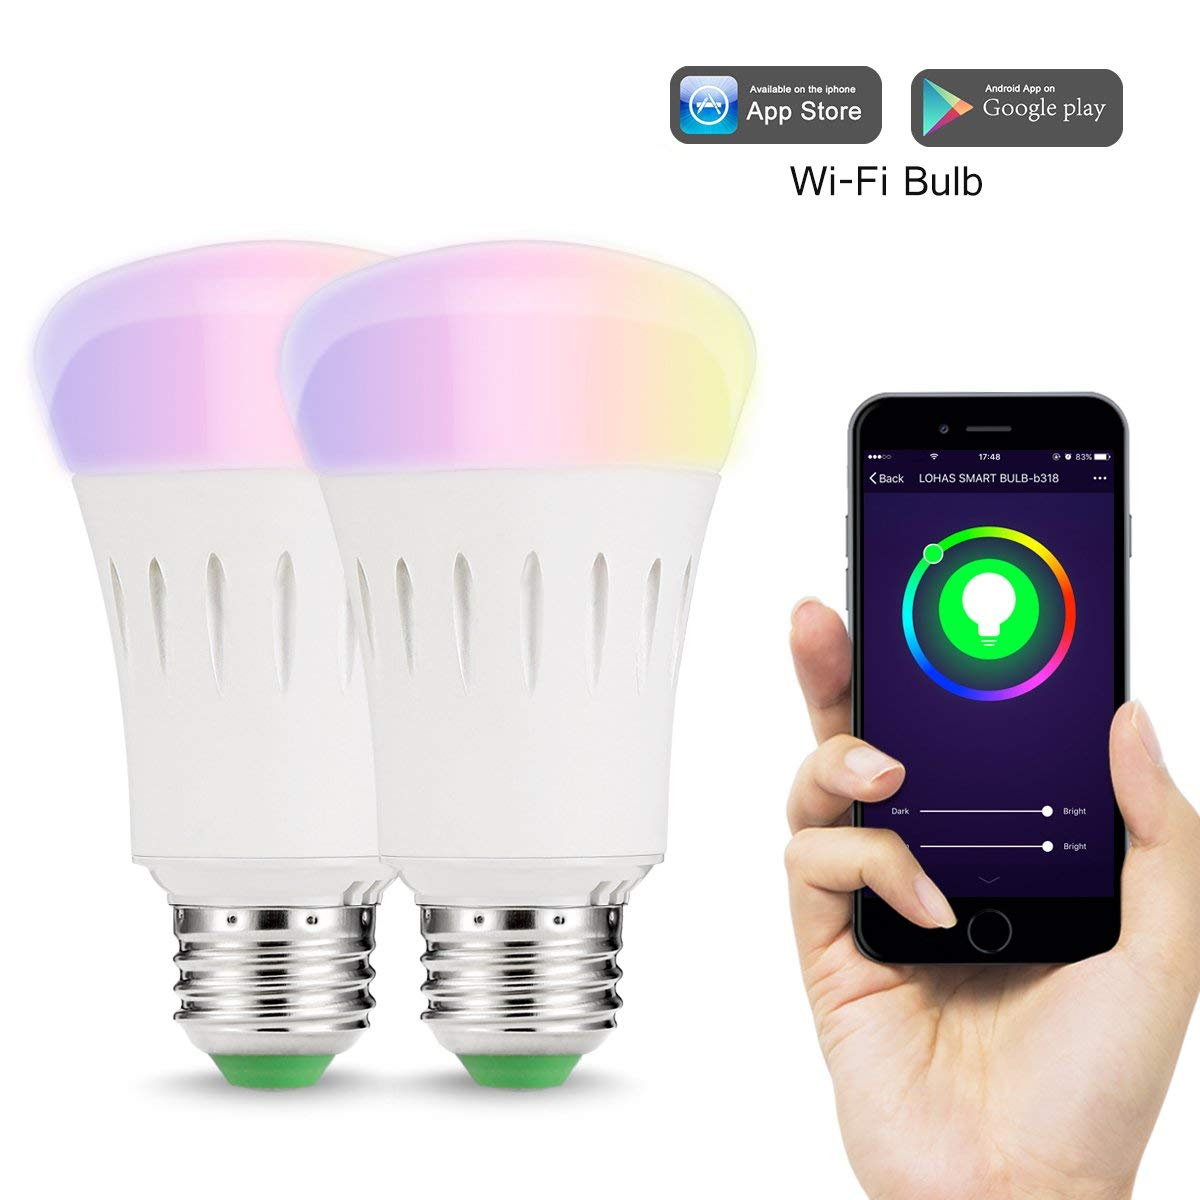 Led Lampen E27 Lohas 9w E27 Wlan Multi Farbe Smart Led Lampen Amazon De